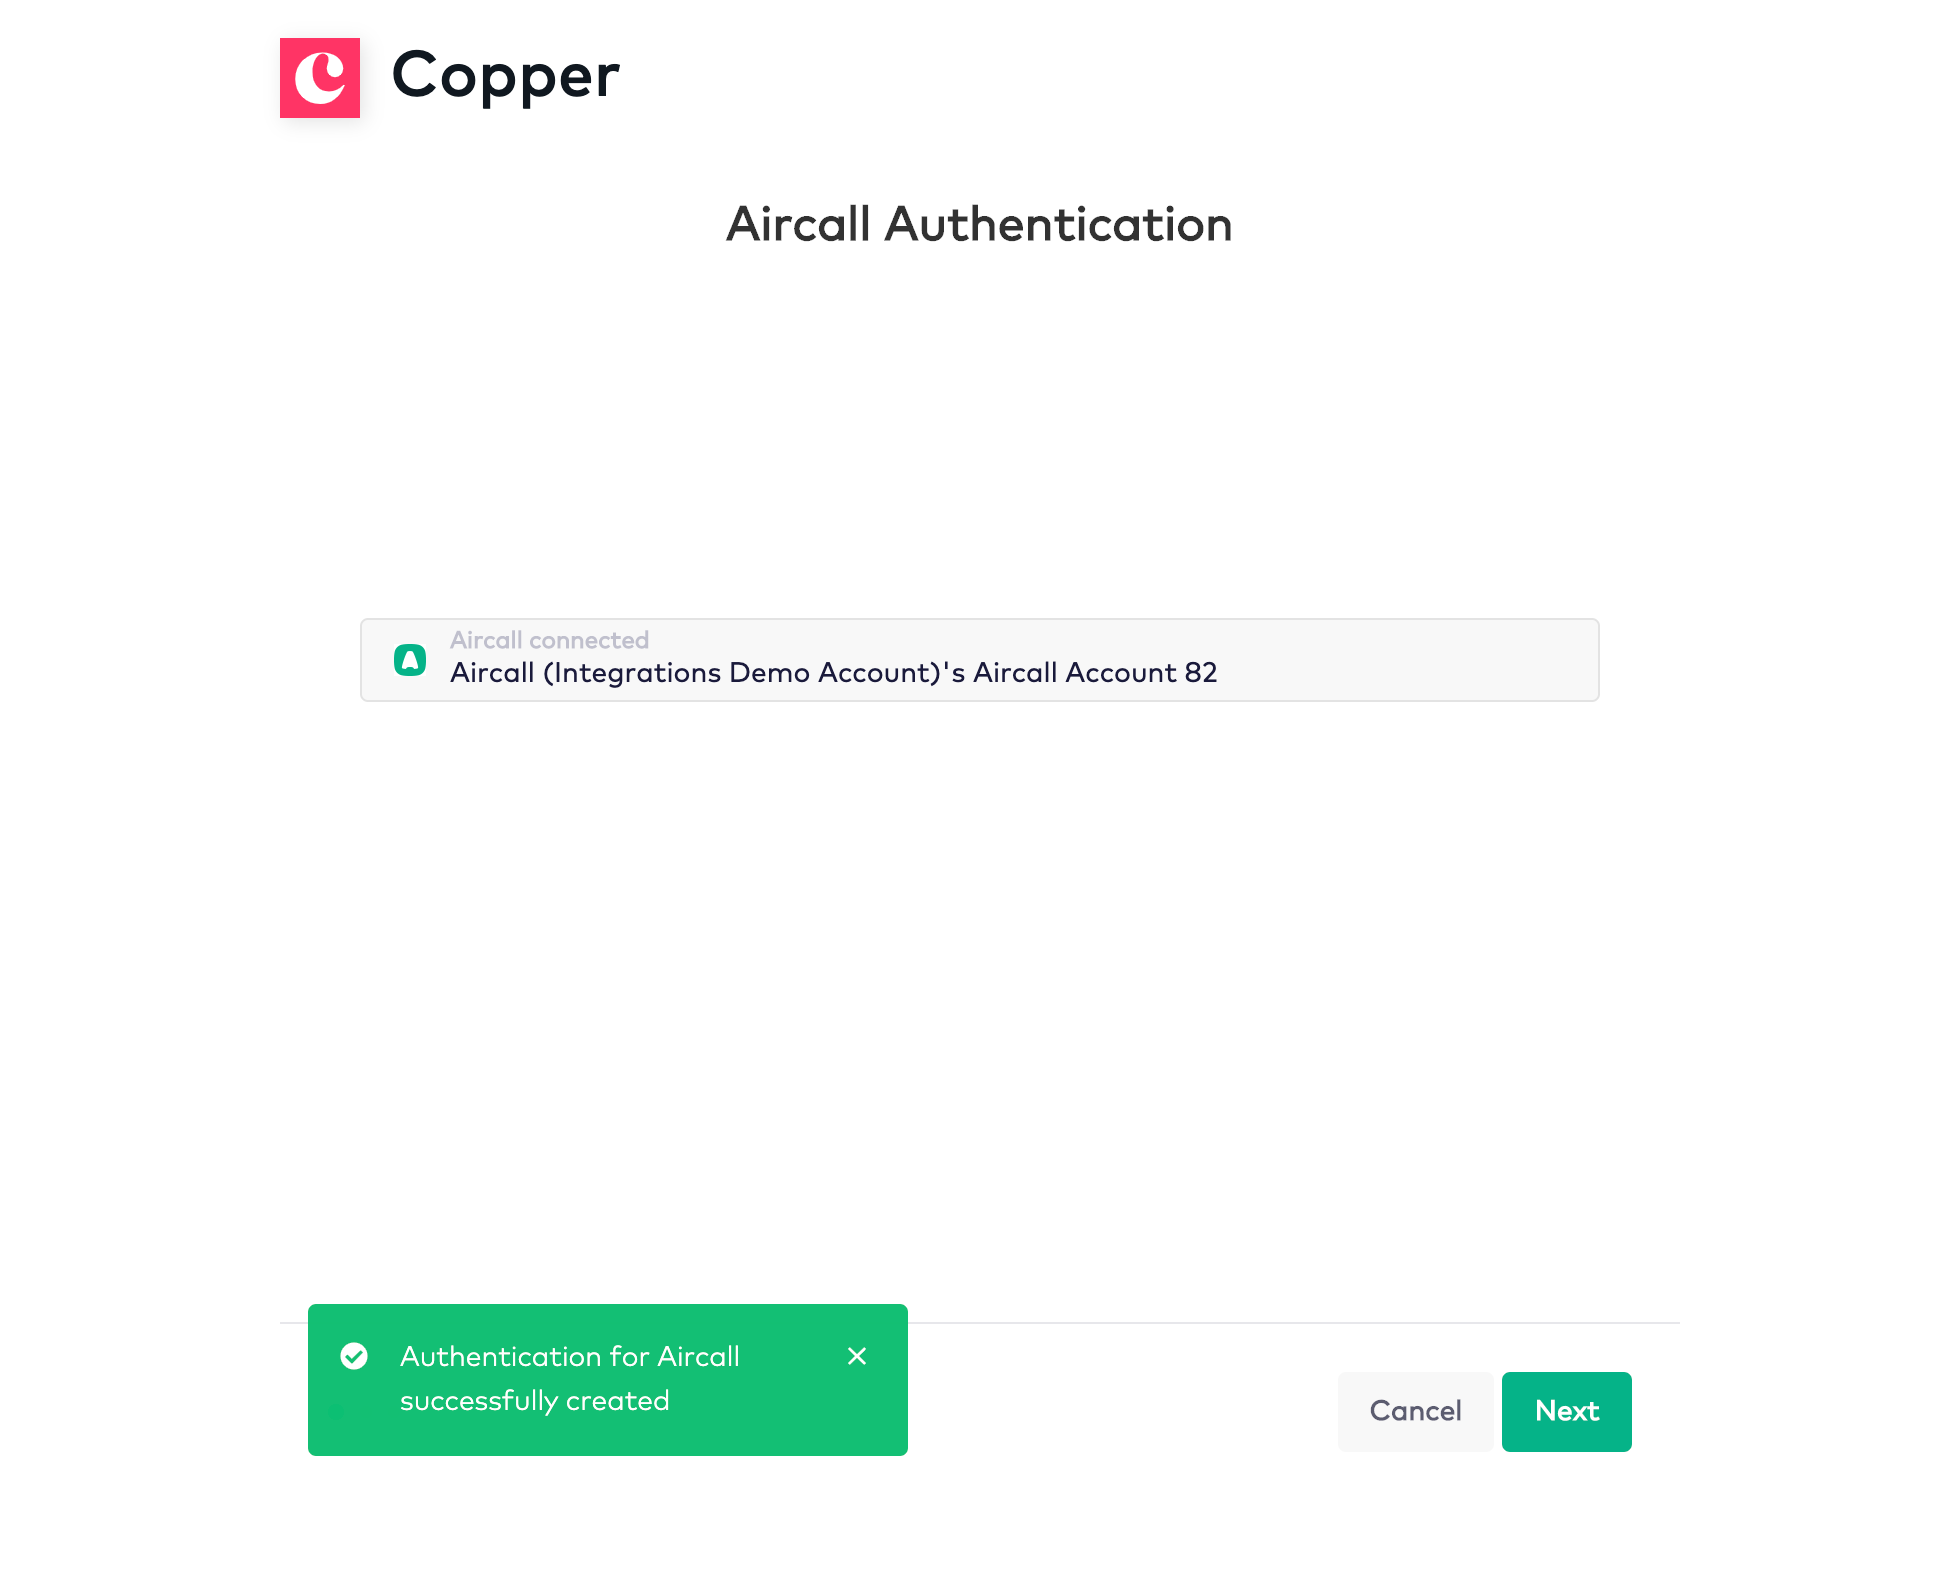 copper_aircall_authentication.png